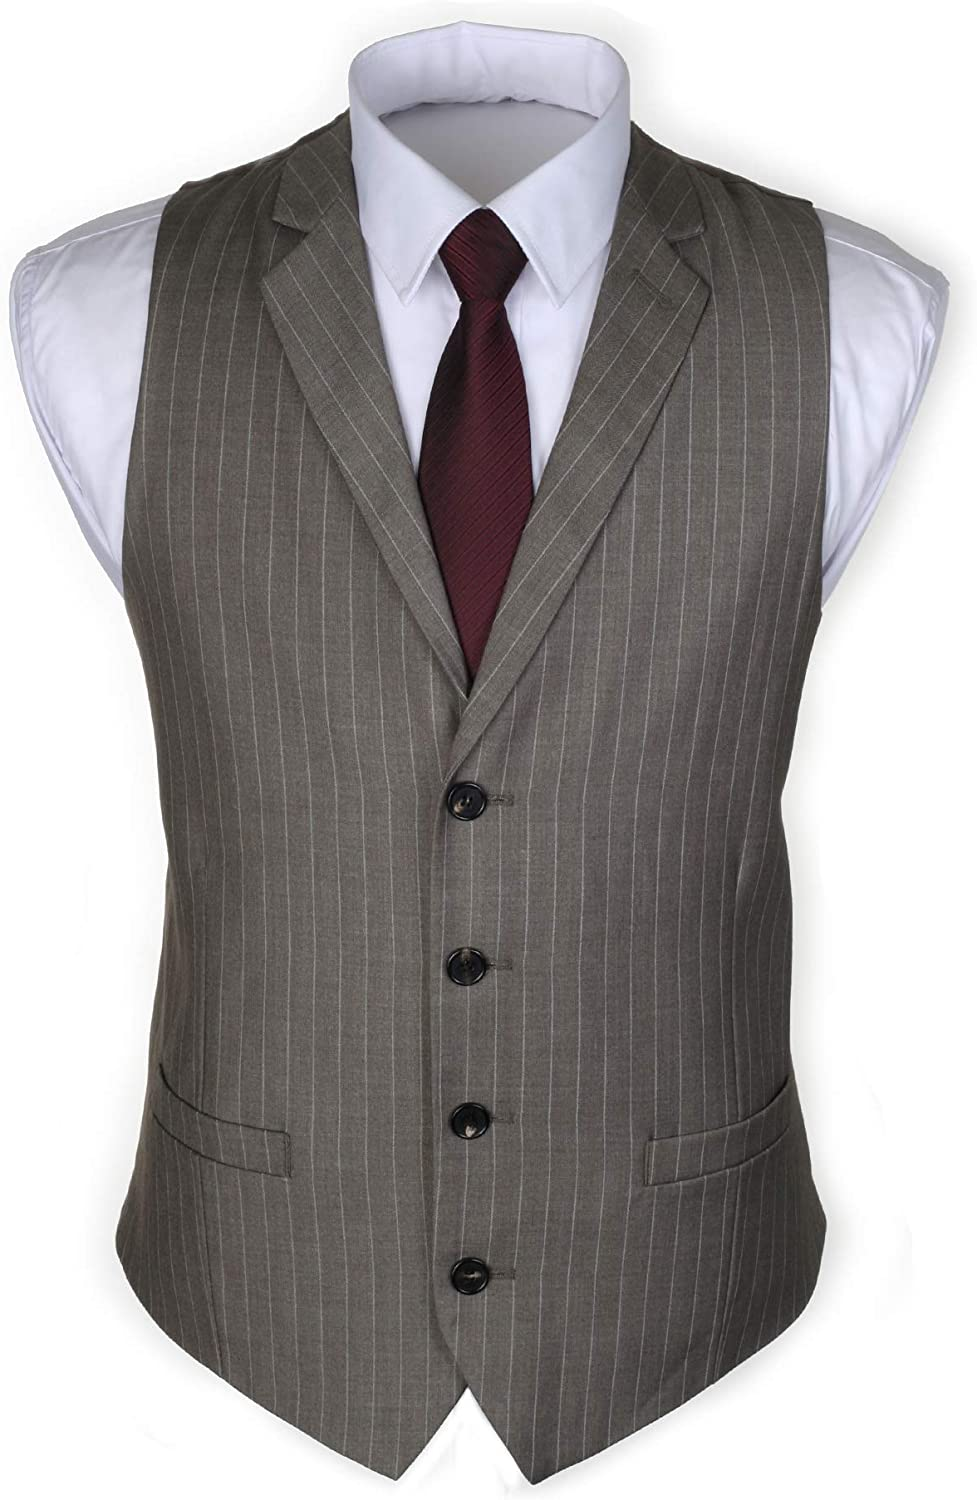 Ruth/&Boaz 2Pockets 4Buttons Business Tailored Collar Suit Waistcoat